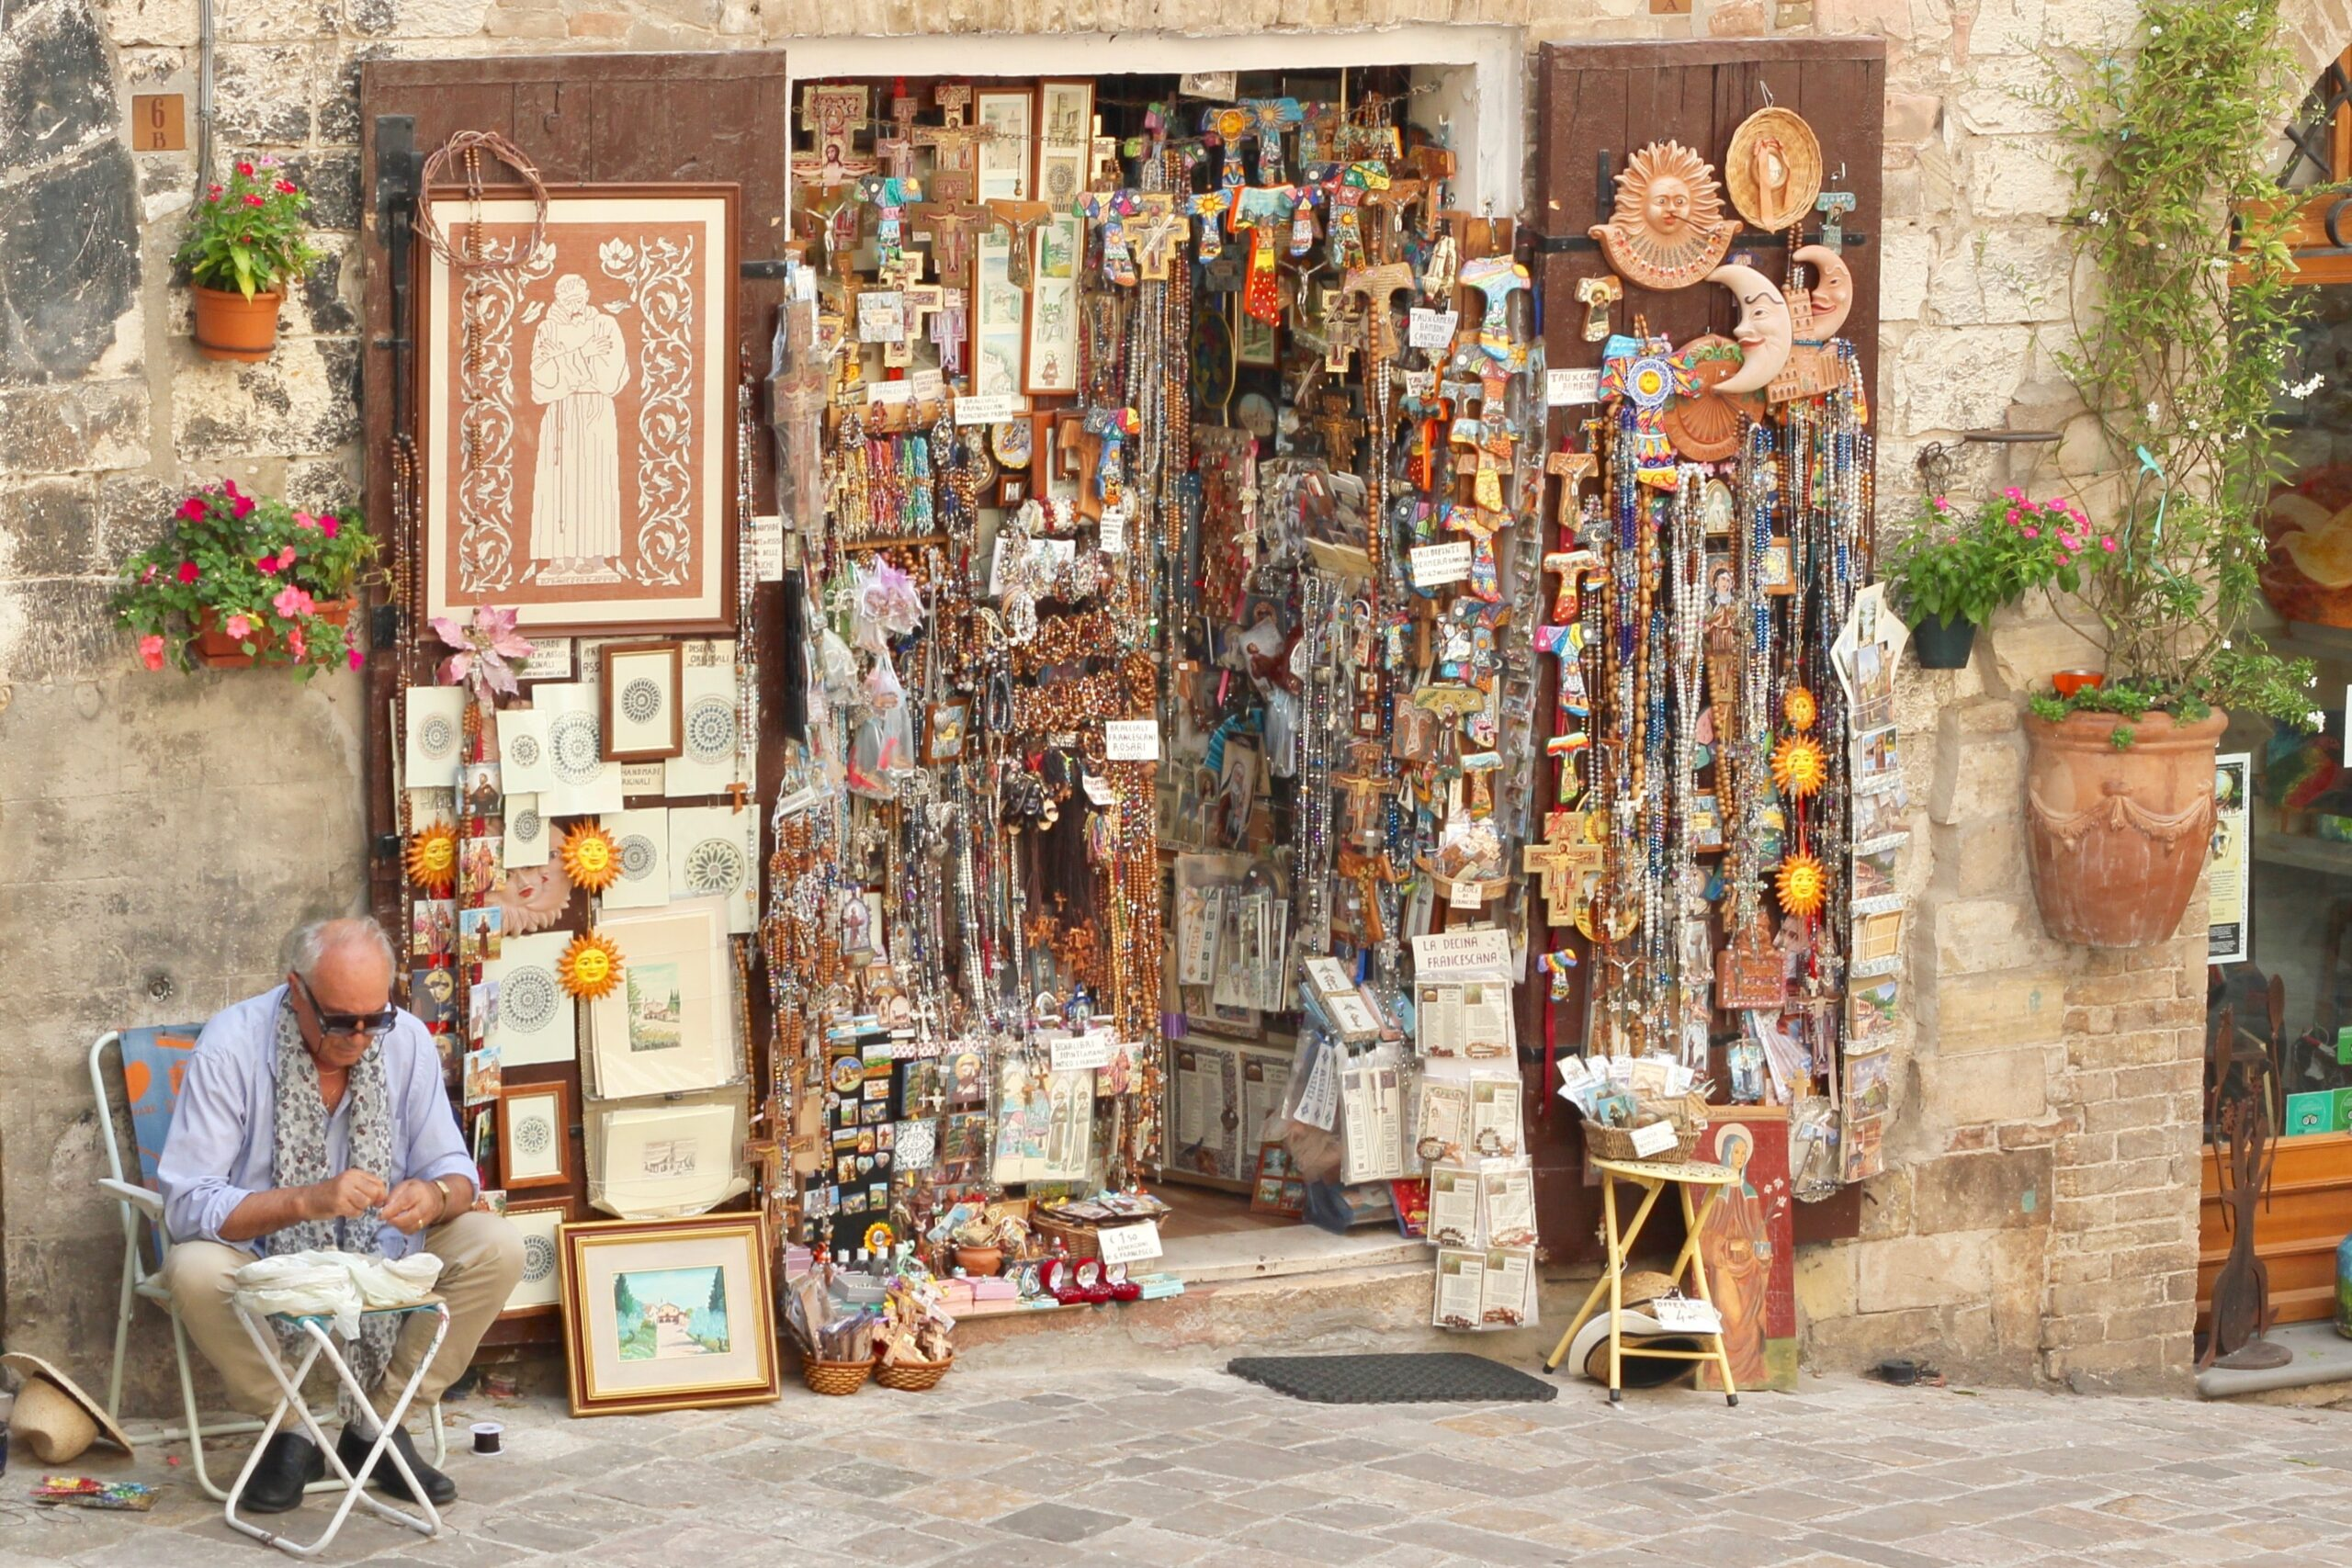 Souvenir Shopping in Italy: What to Buy and Where